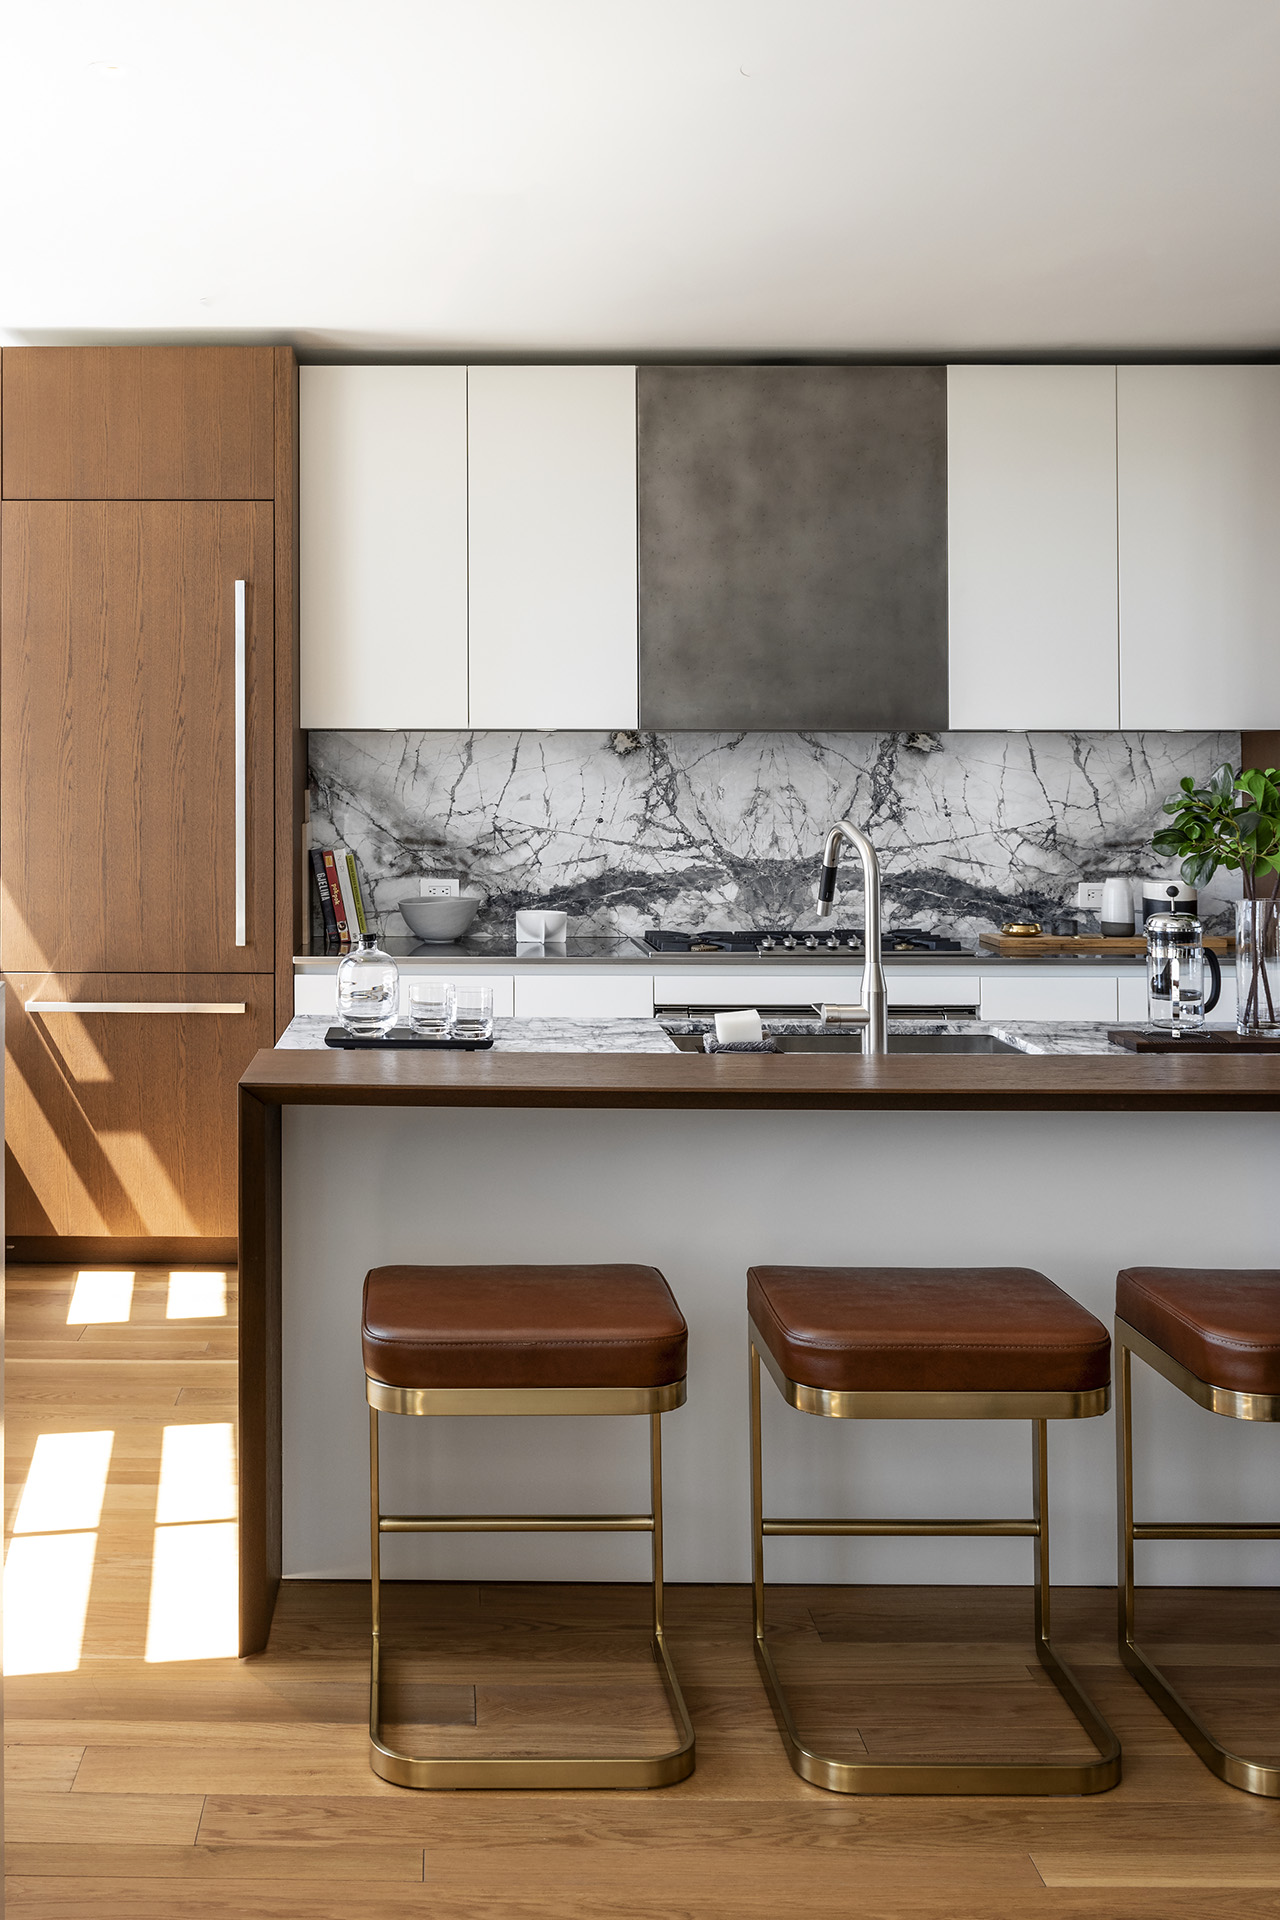 A rich mix of materials from stone, marble and wood is featured in the kitchen, accented by bronze highlights and plush, chocolate leather bar stools. Photo by Gianni Franchellucci.